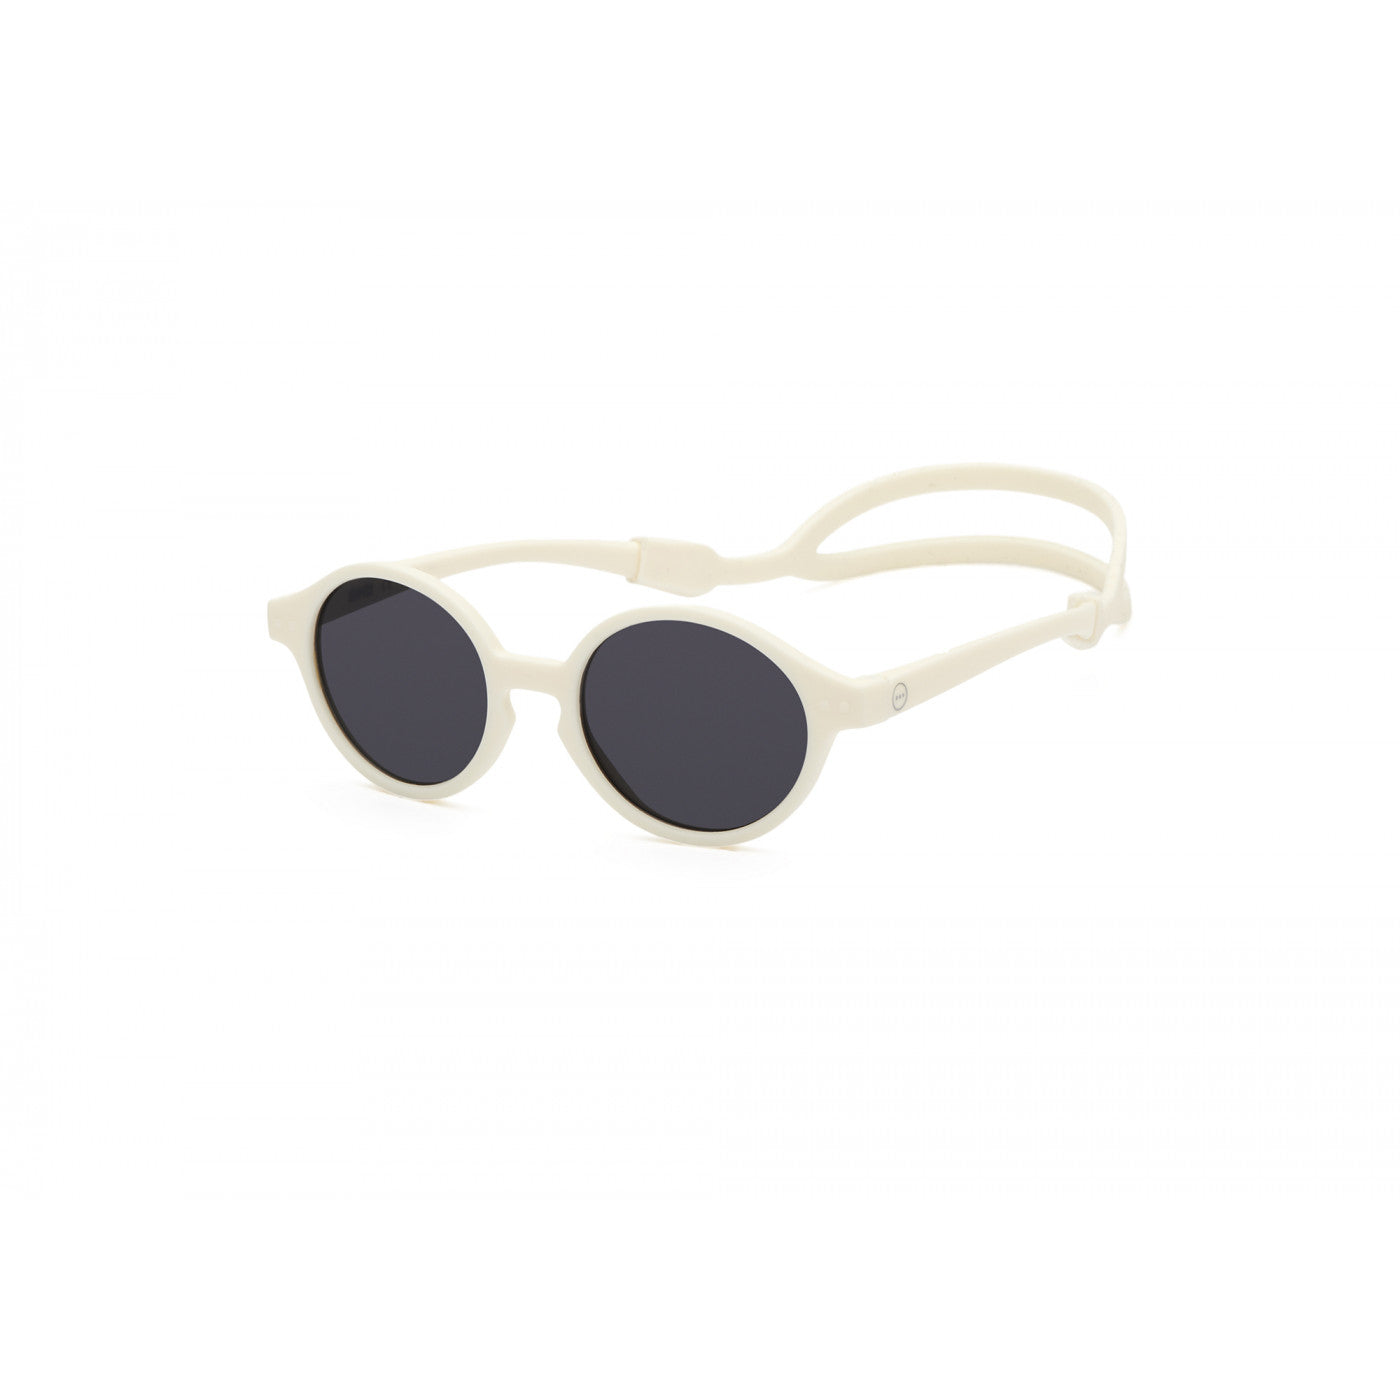 SUN KIDS BABY SUNGLASSES / 12-36 MONTHS / MILK